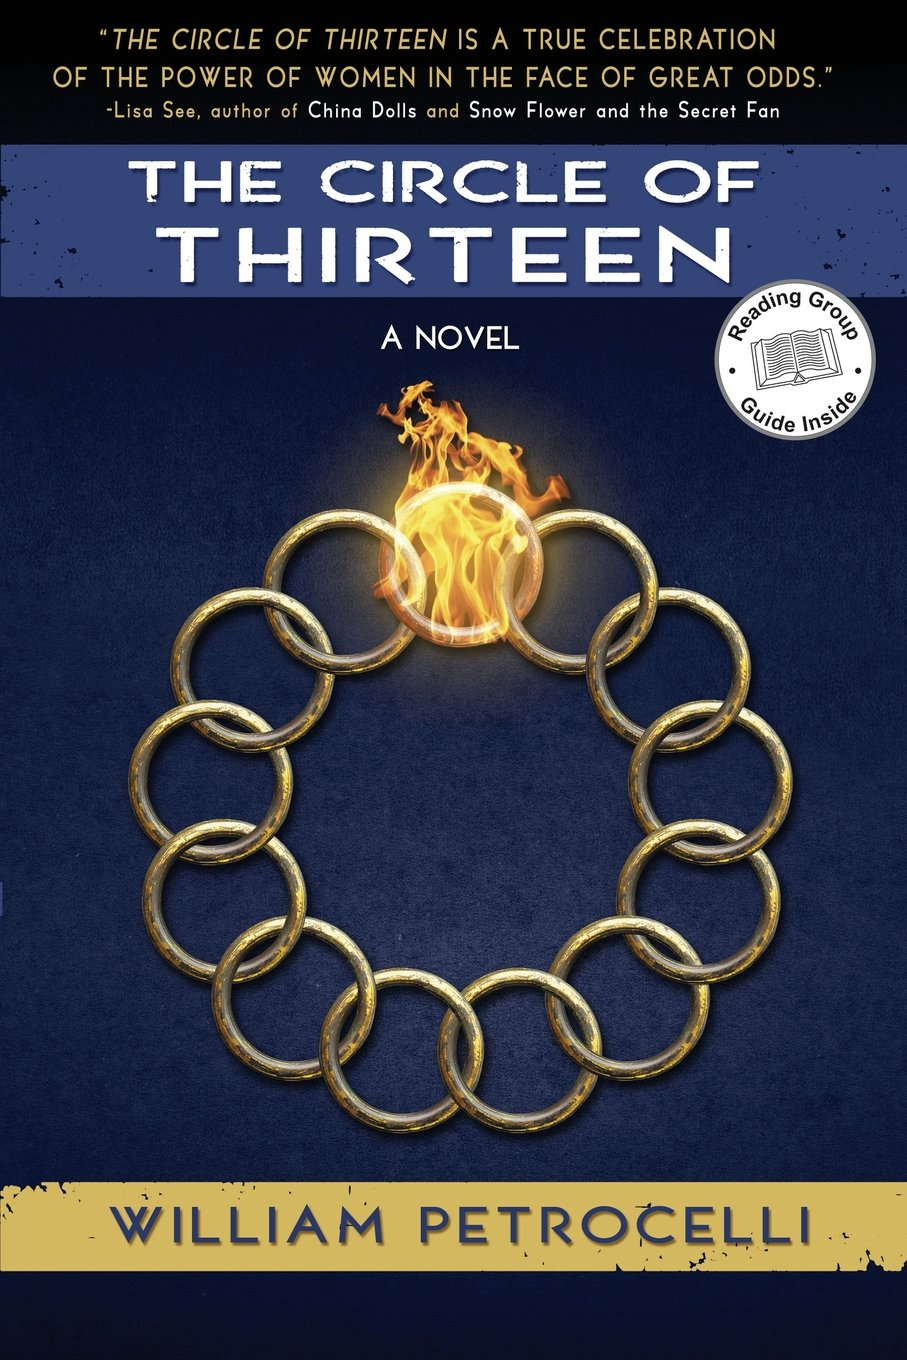 The Circle Of Thirteen: William Petrocelli: 9781630268763: Amazon: Books